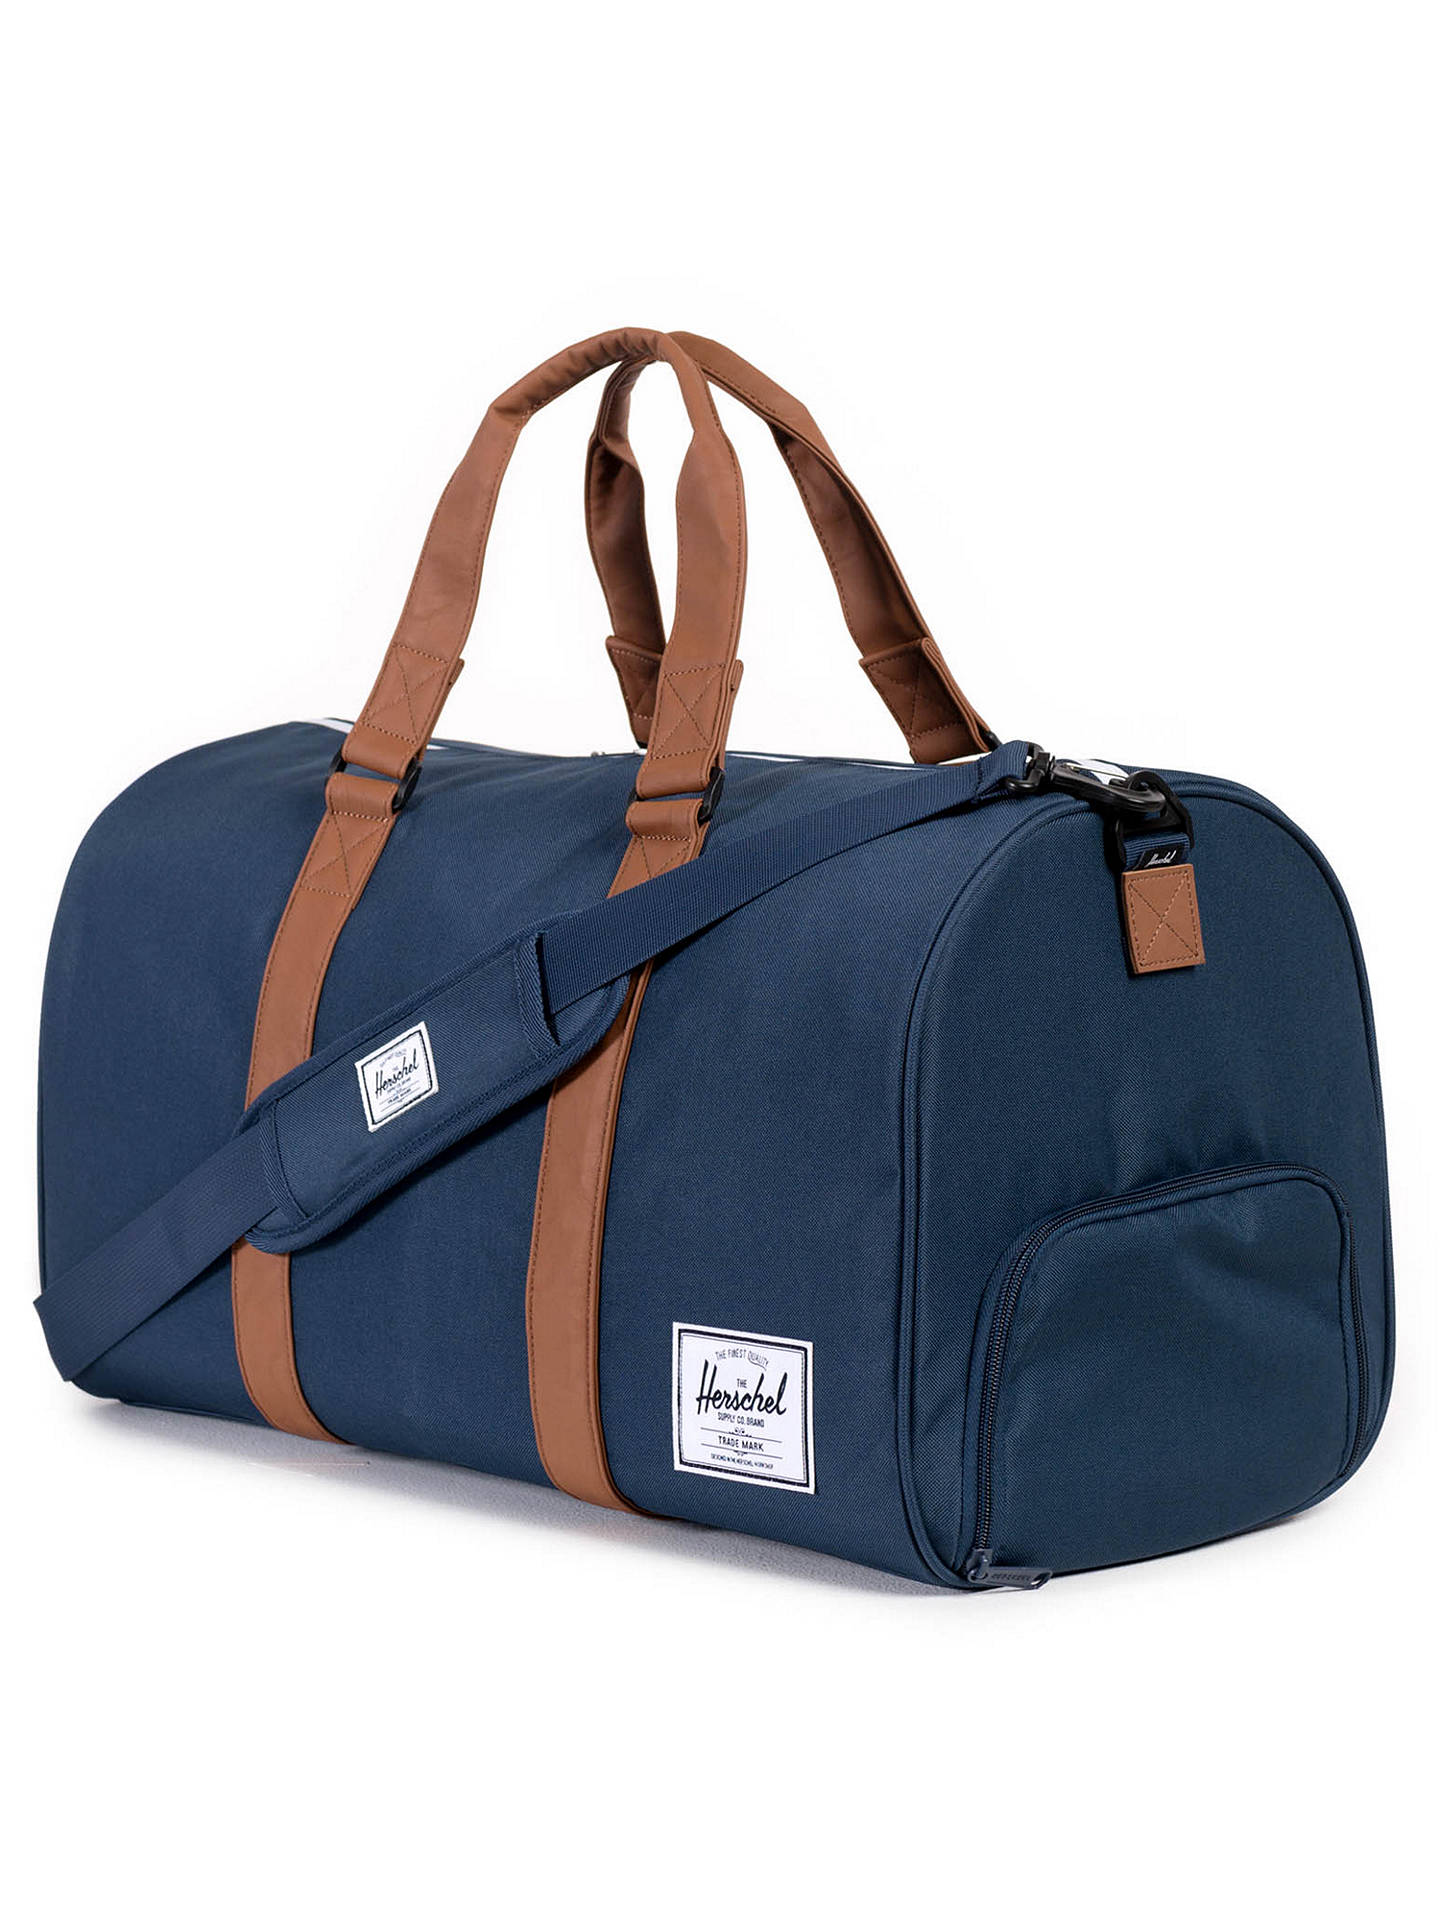 19eac649cb61 Herschel Supply Co. Novel Duffle Holdall at John Lewis   Partners